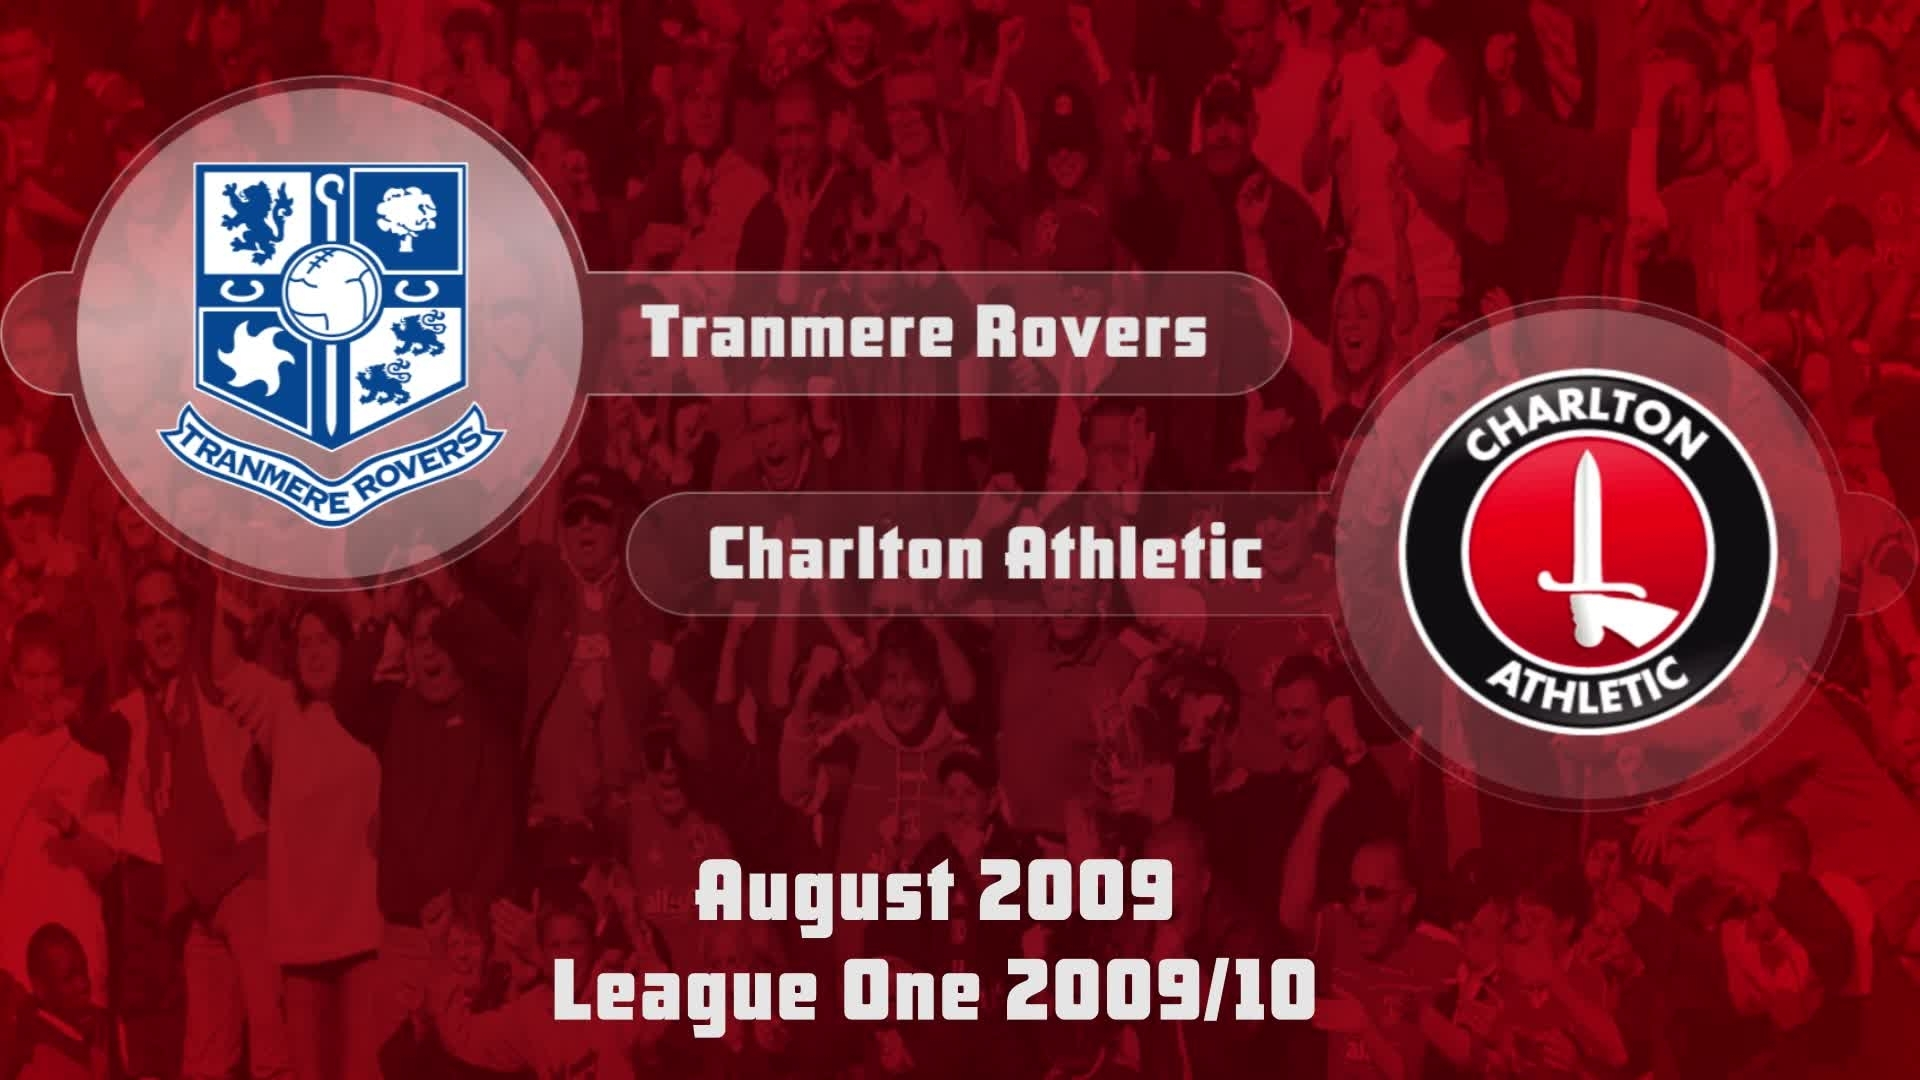 06 HIGHLIGHTS | Tranmere 0 Charlton 4 (Aug 2009)